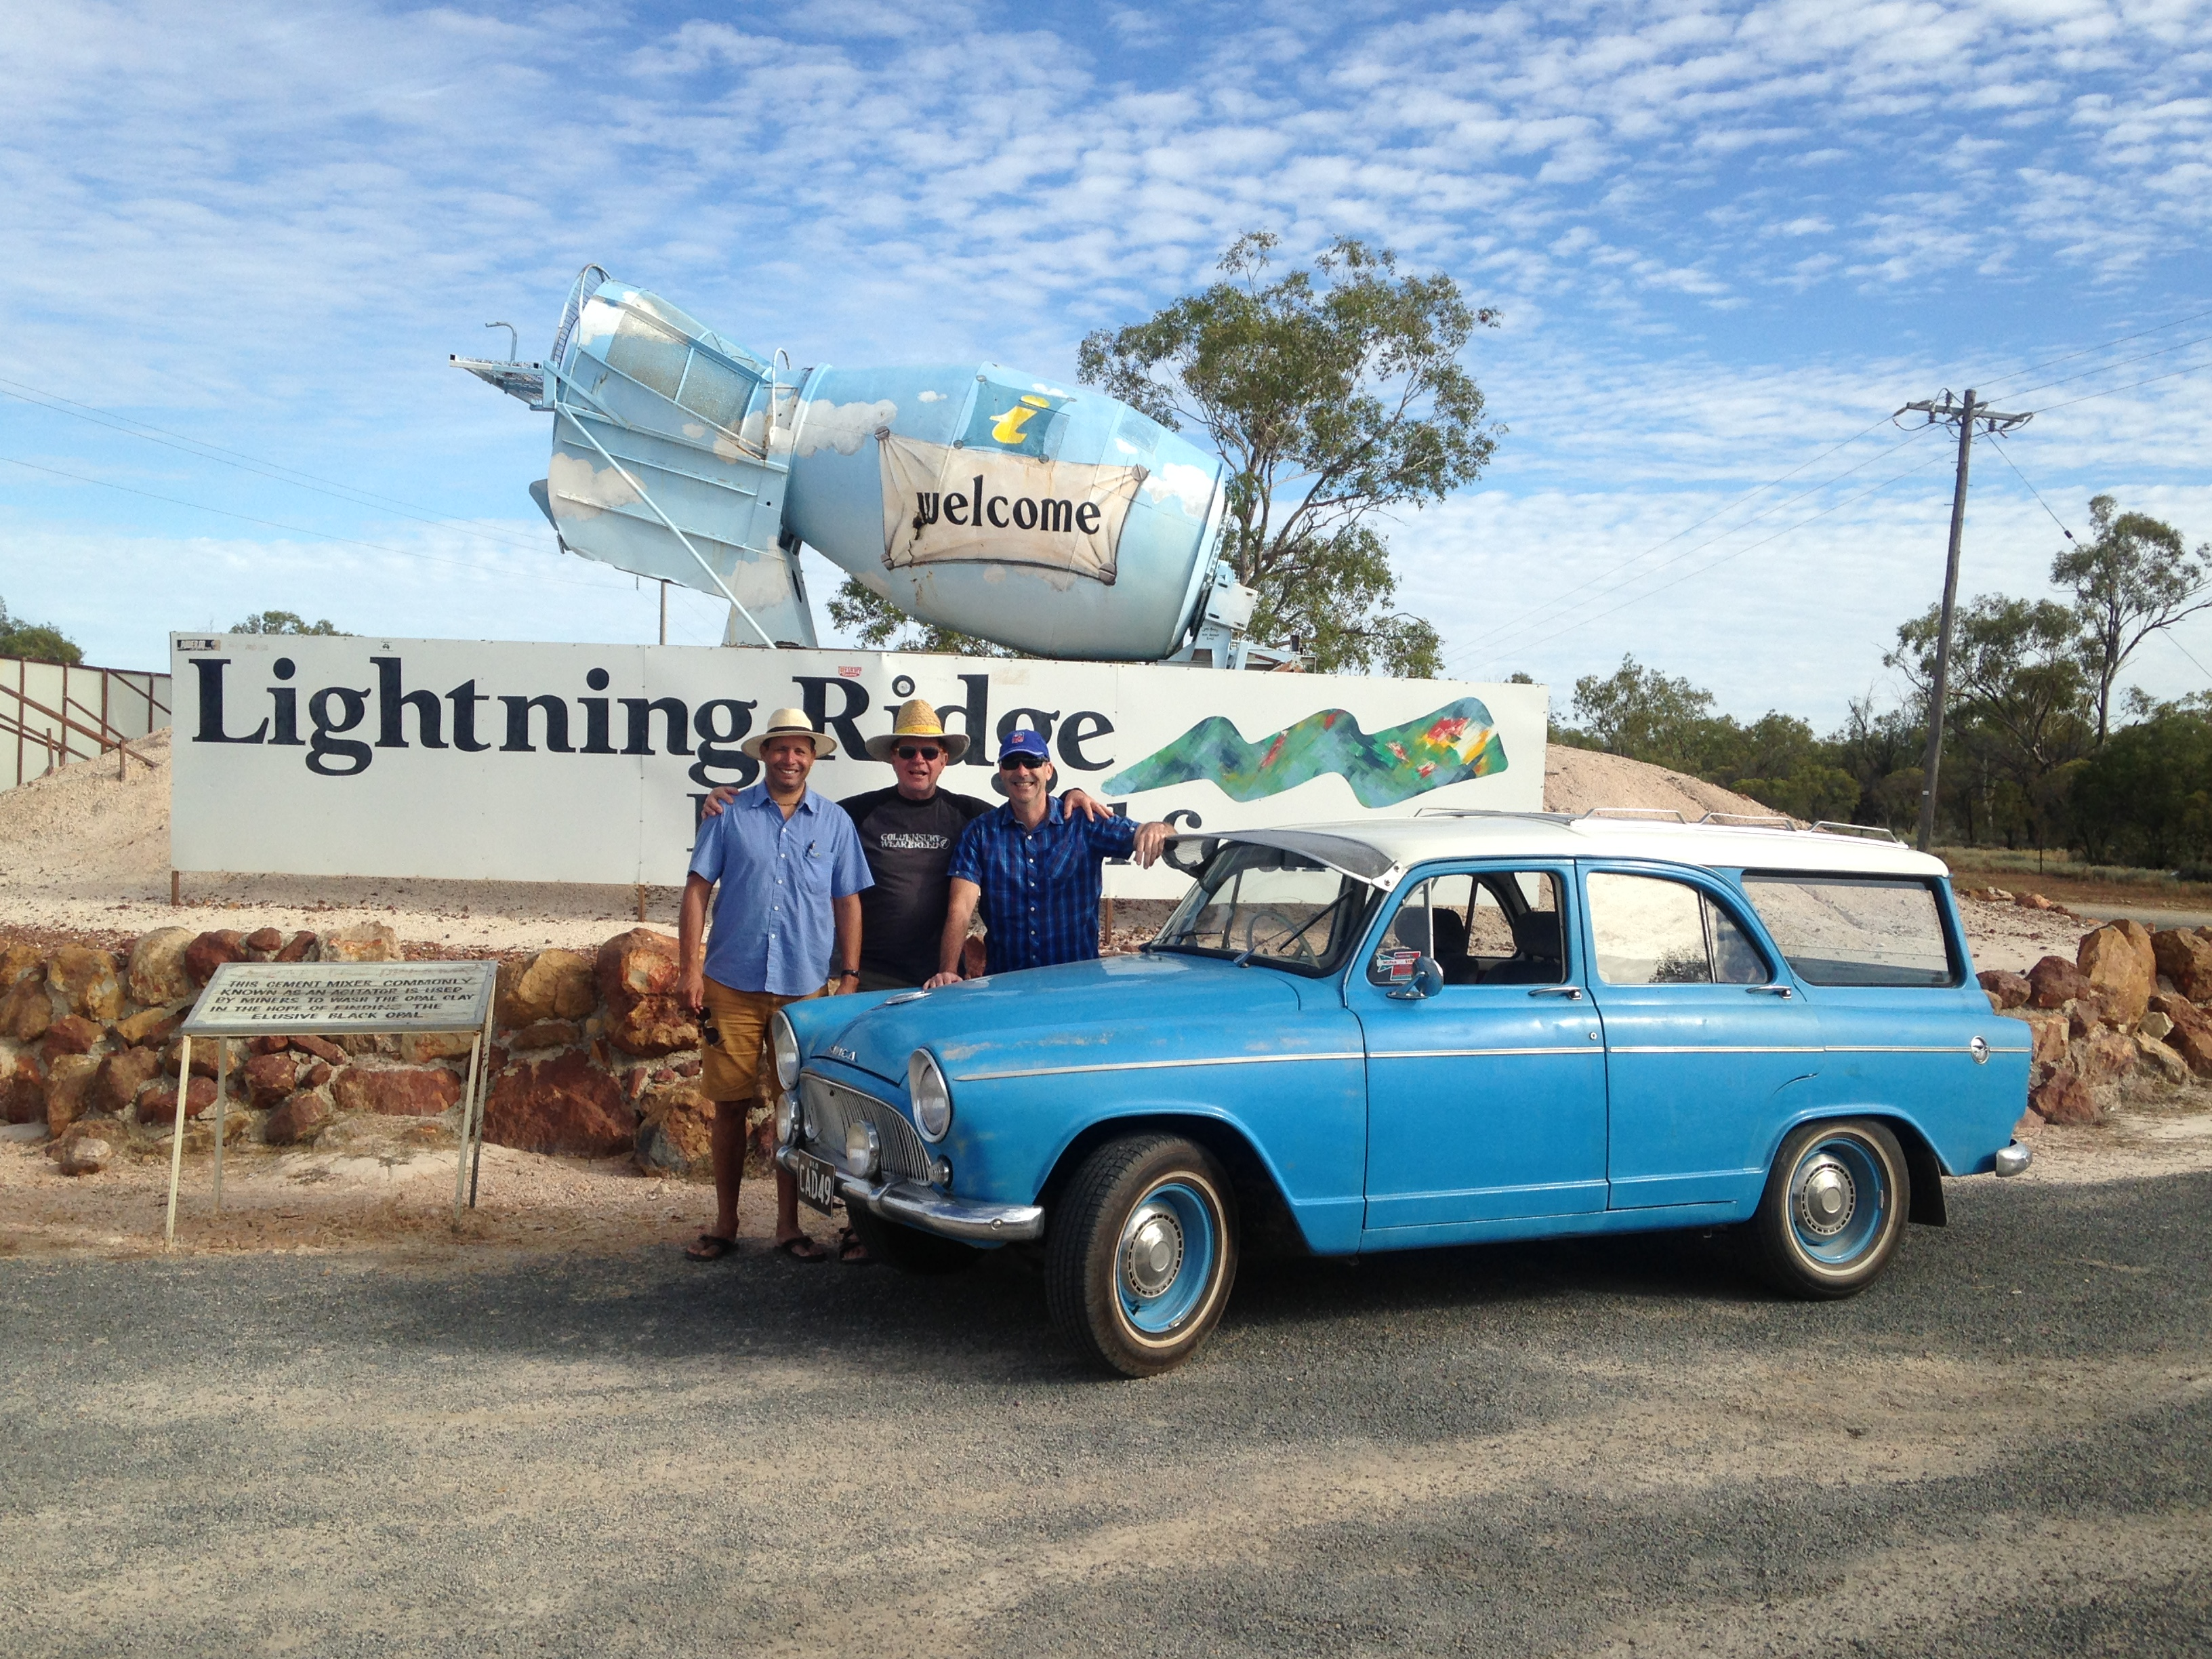 At Lightning Ridge (2016)